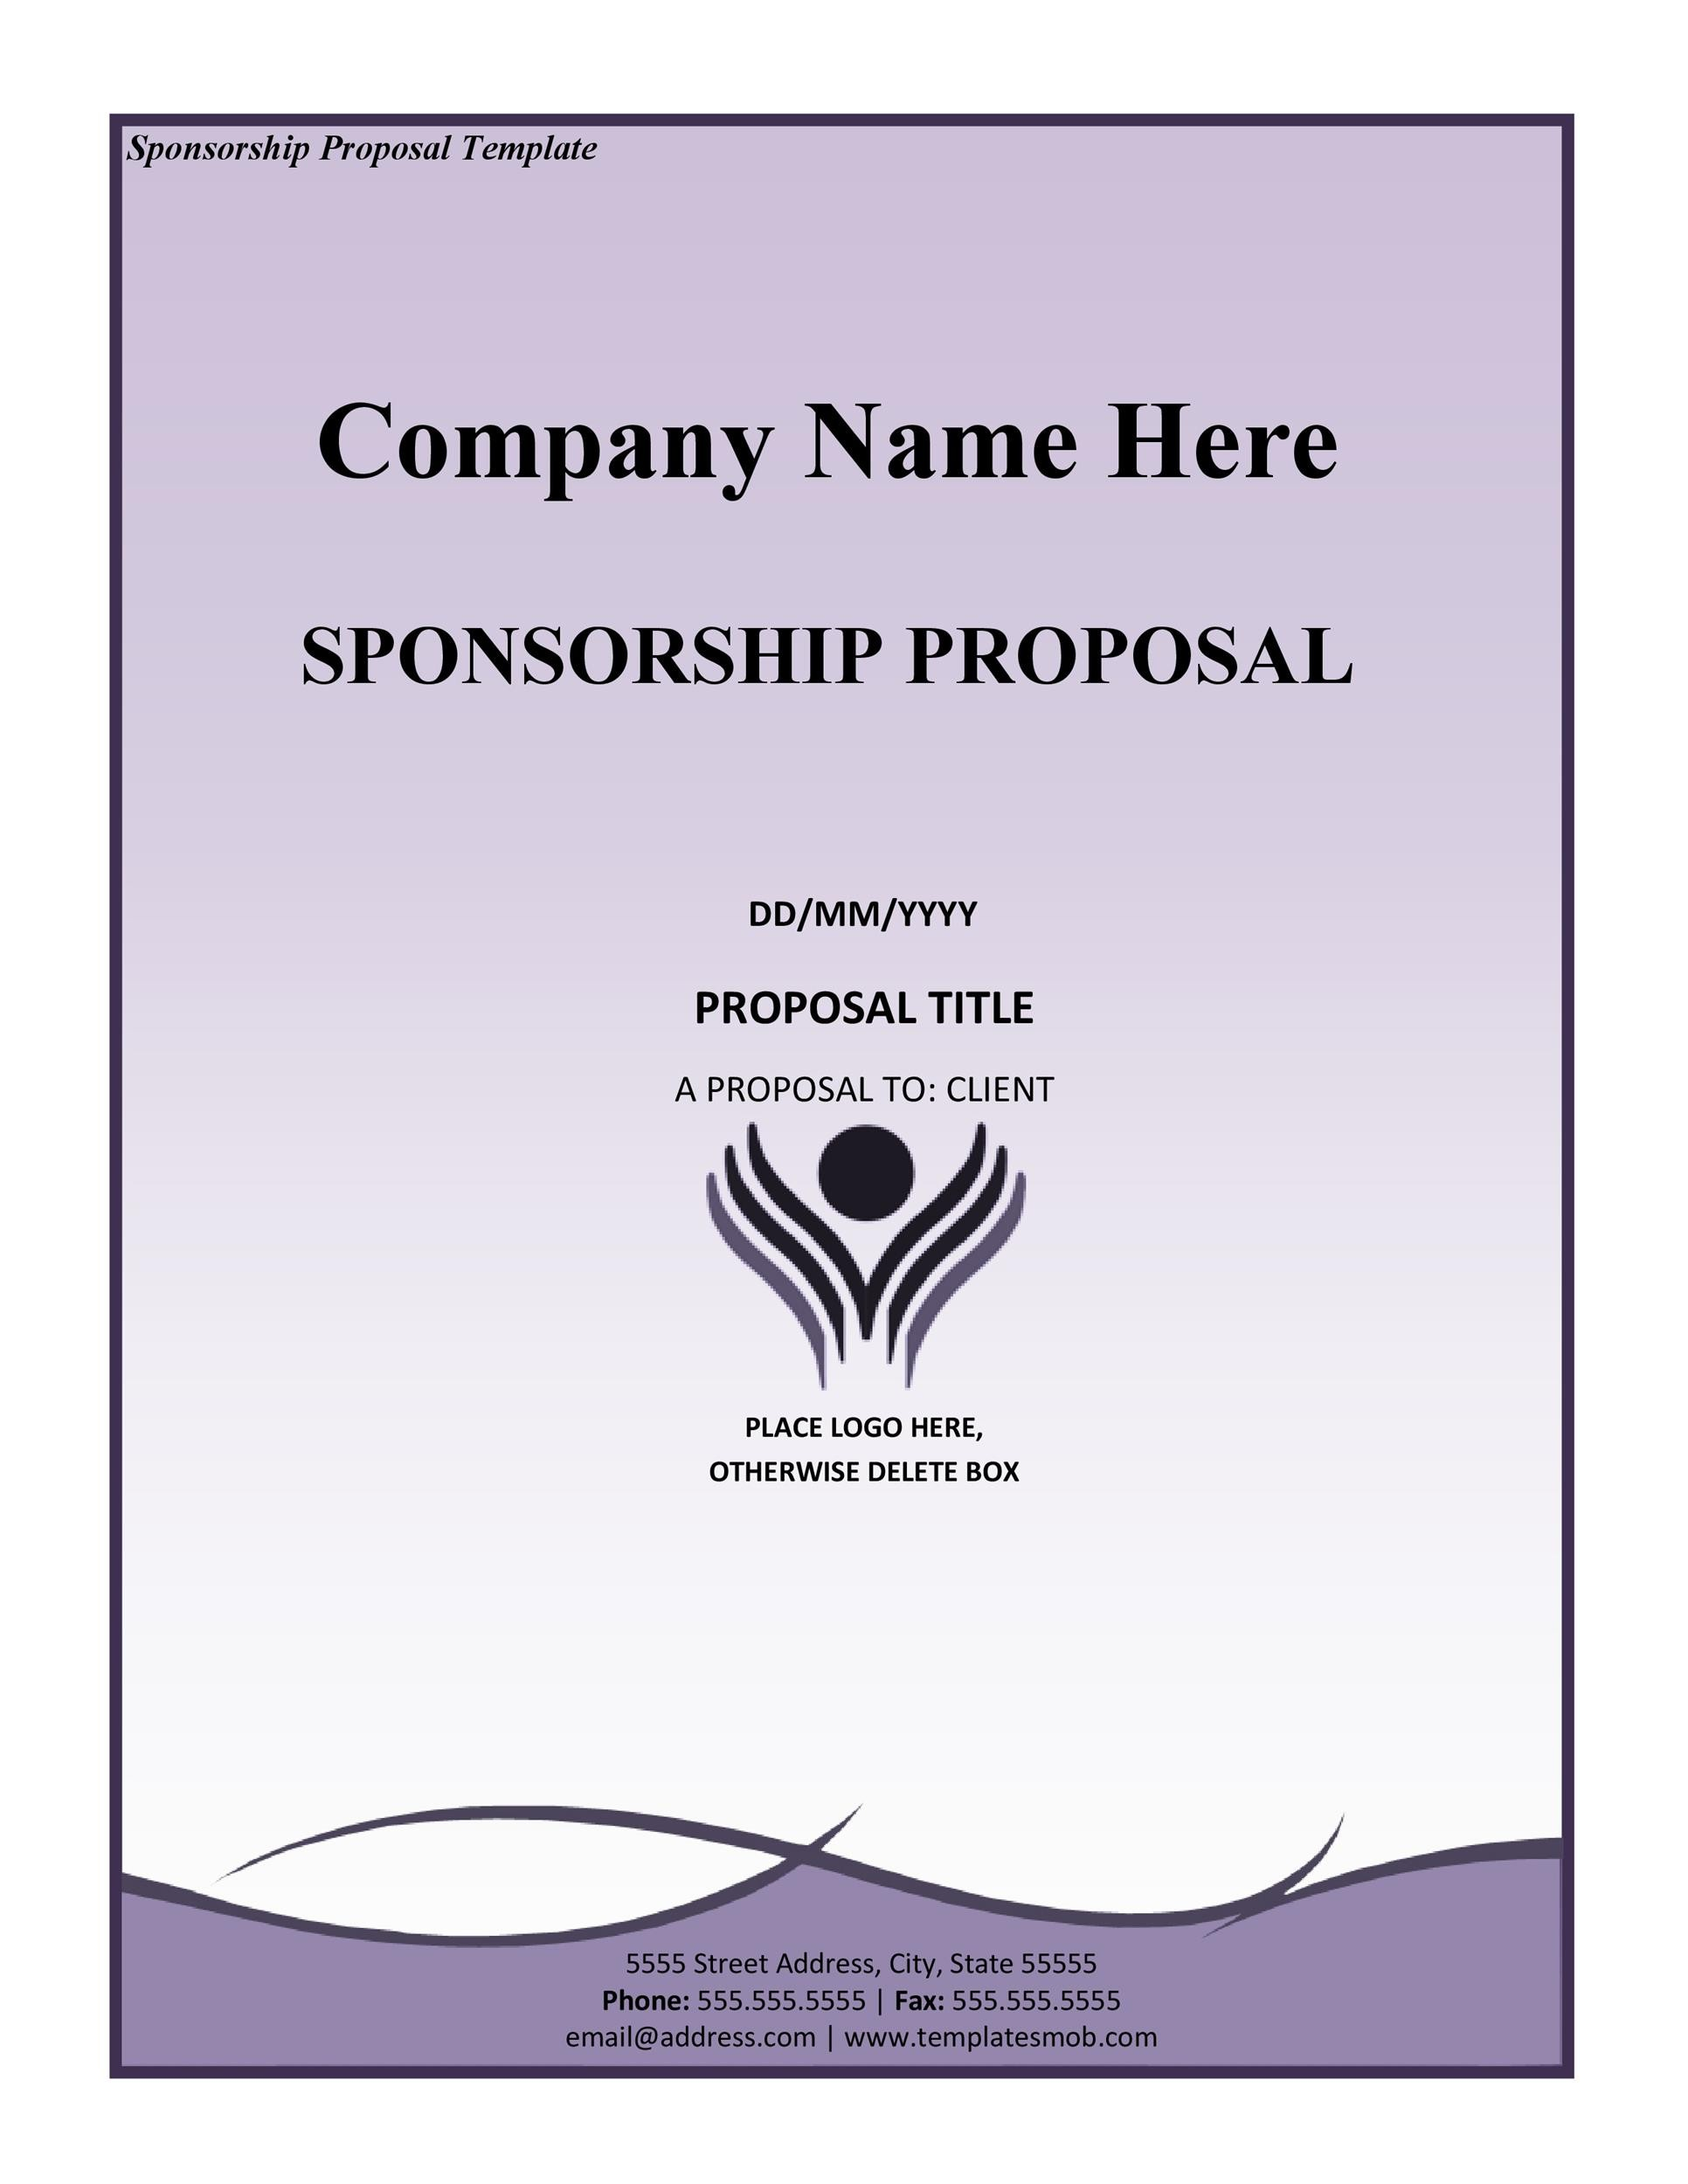 40 Sponsorship Letter Sponsorship Proposal Templates – Sponsorship Proposal Samples